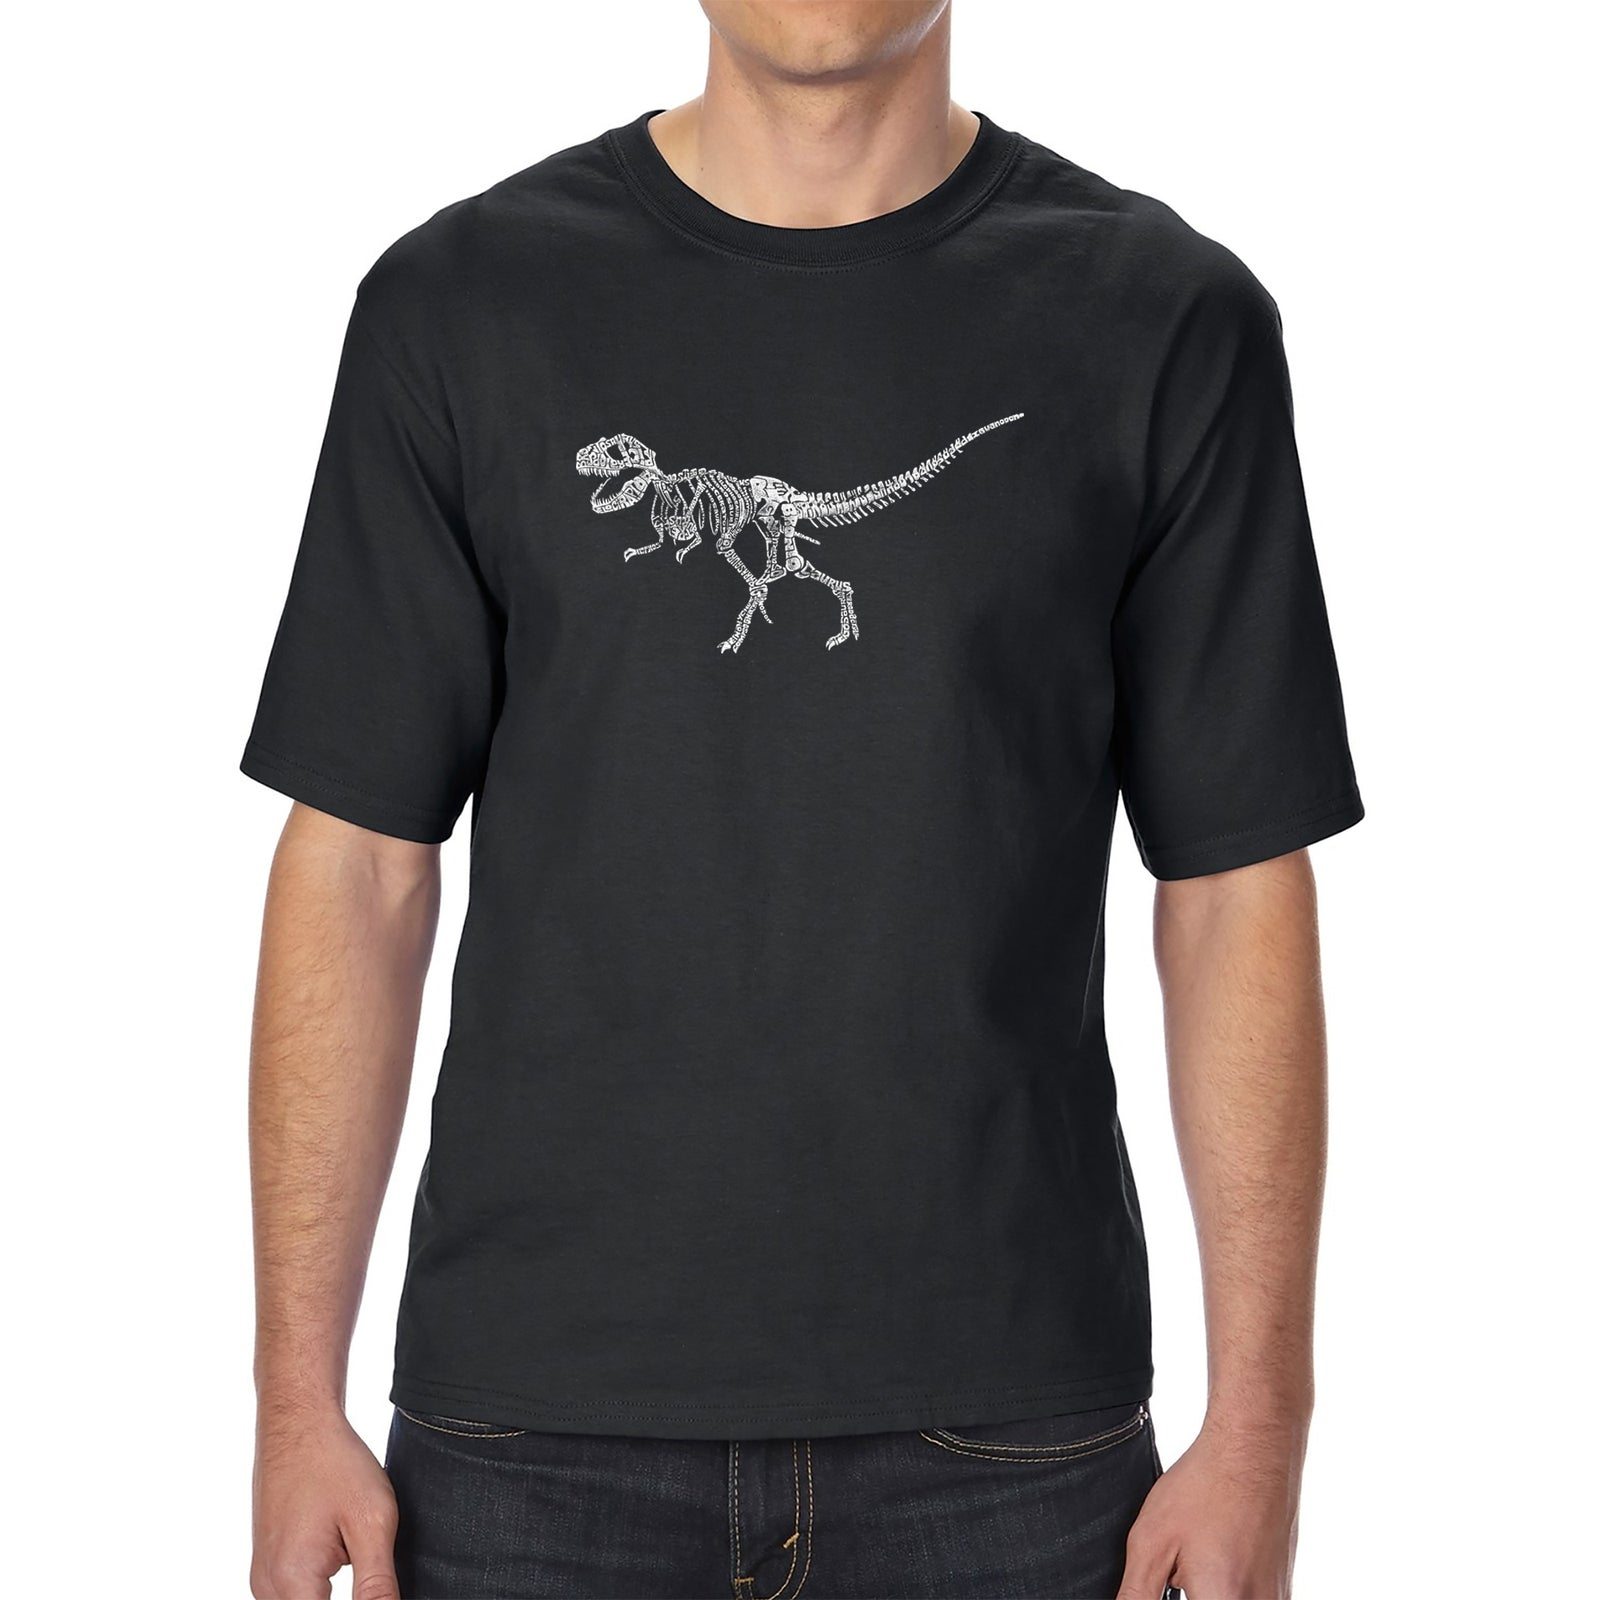 Men's Tall and Long Word Art T-shirt - Dinosaur T-Rex Skeleton